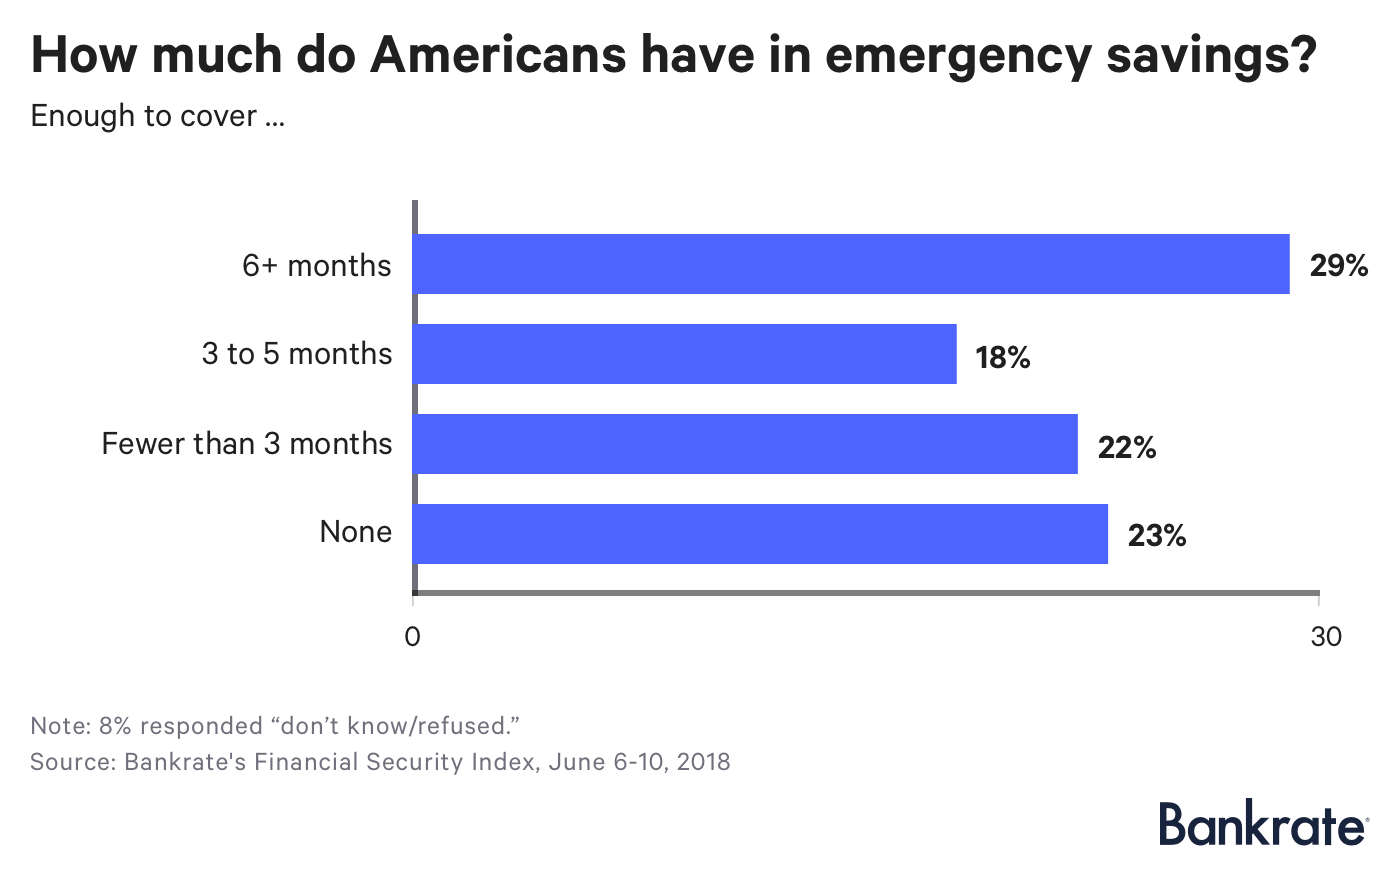 many americans are satisfied with their inadequate emergency savings